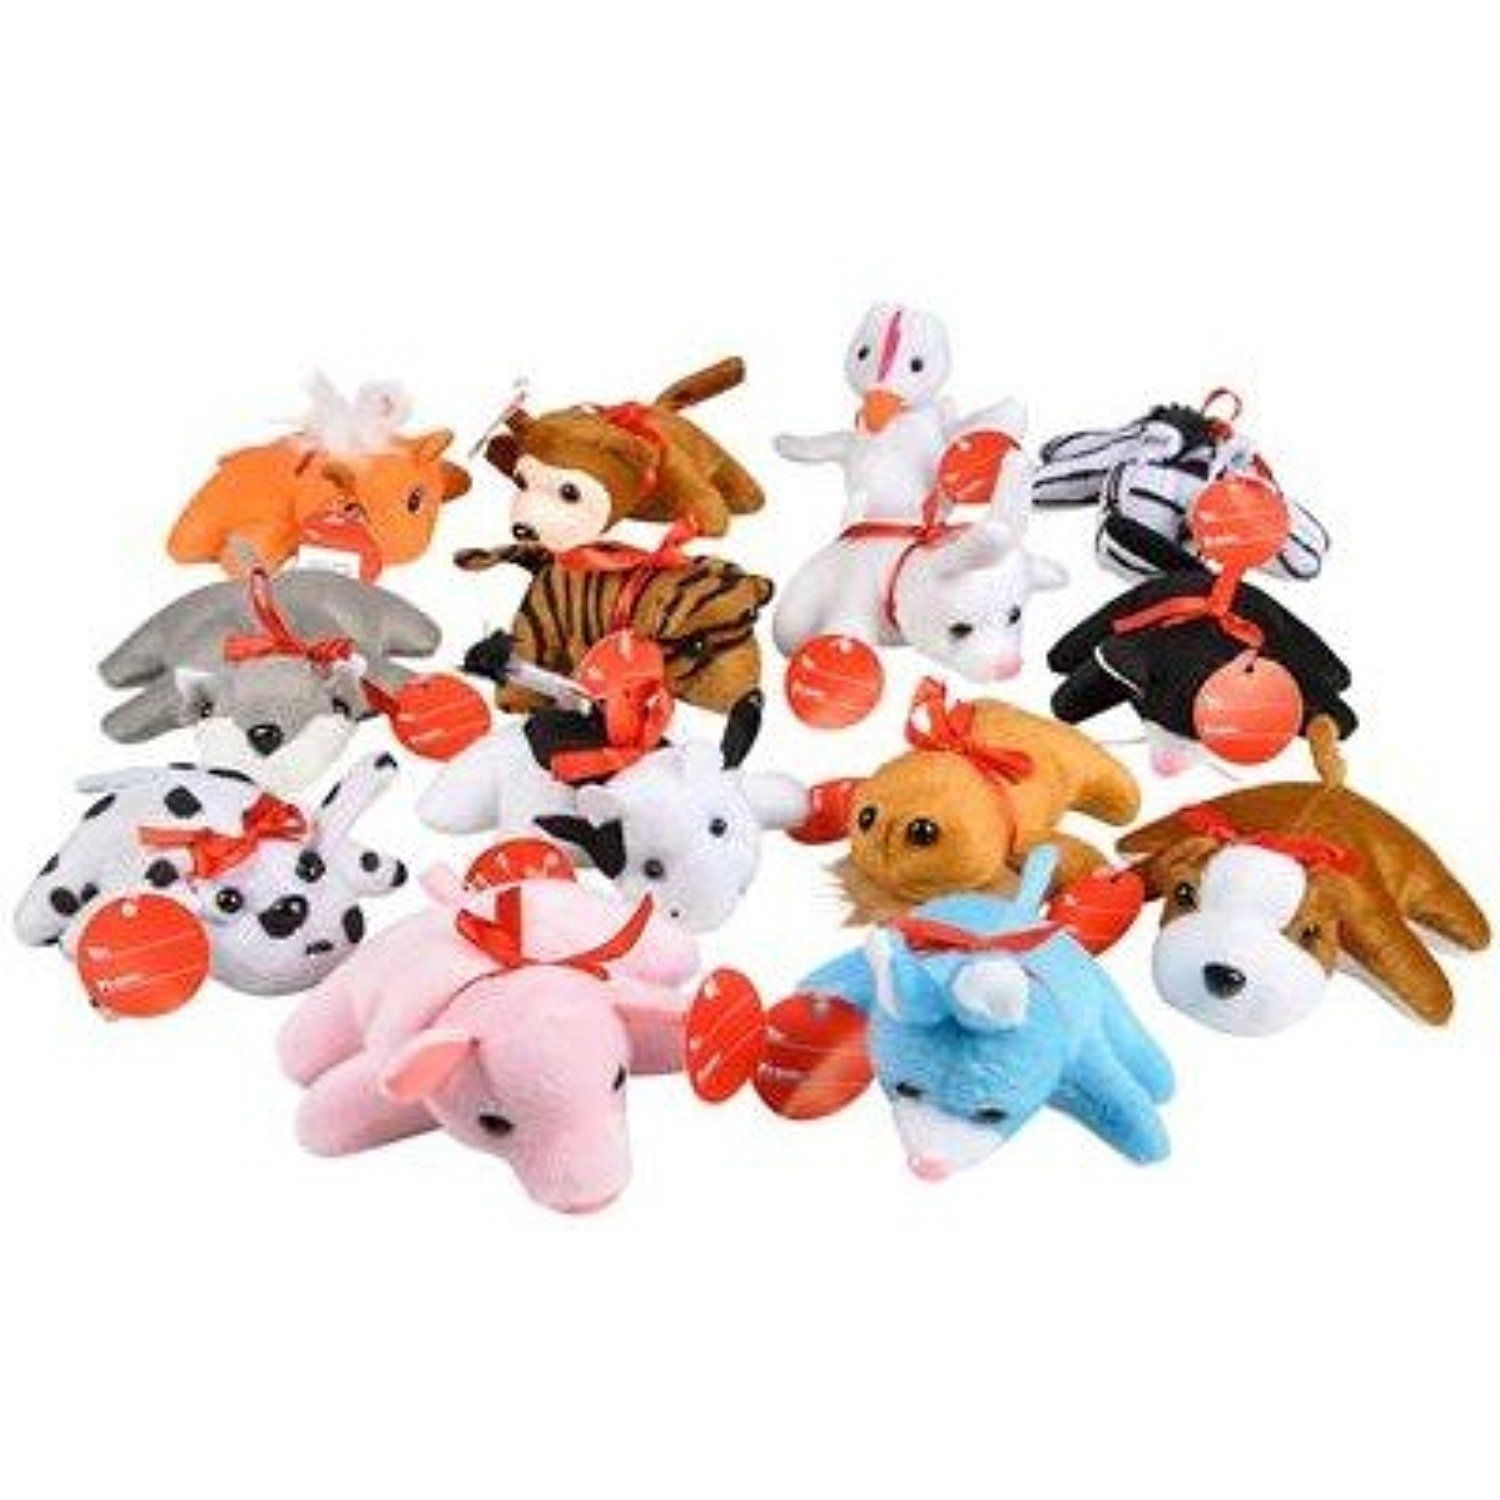 Mini Plush Bears And Stuffed Toy Animals Bulk Pack Of 50 More